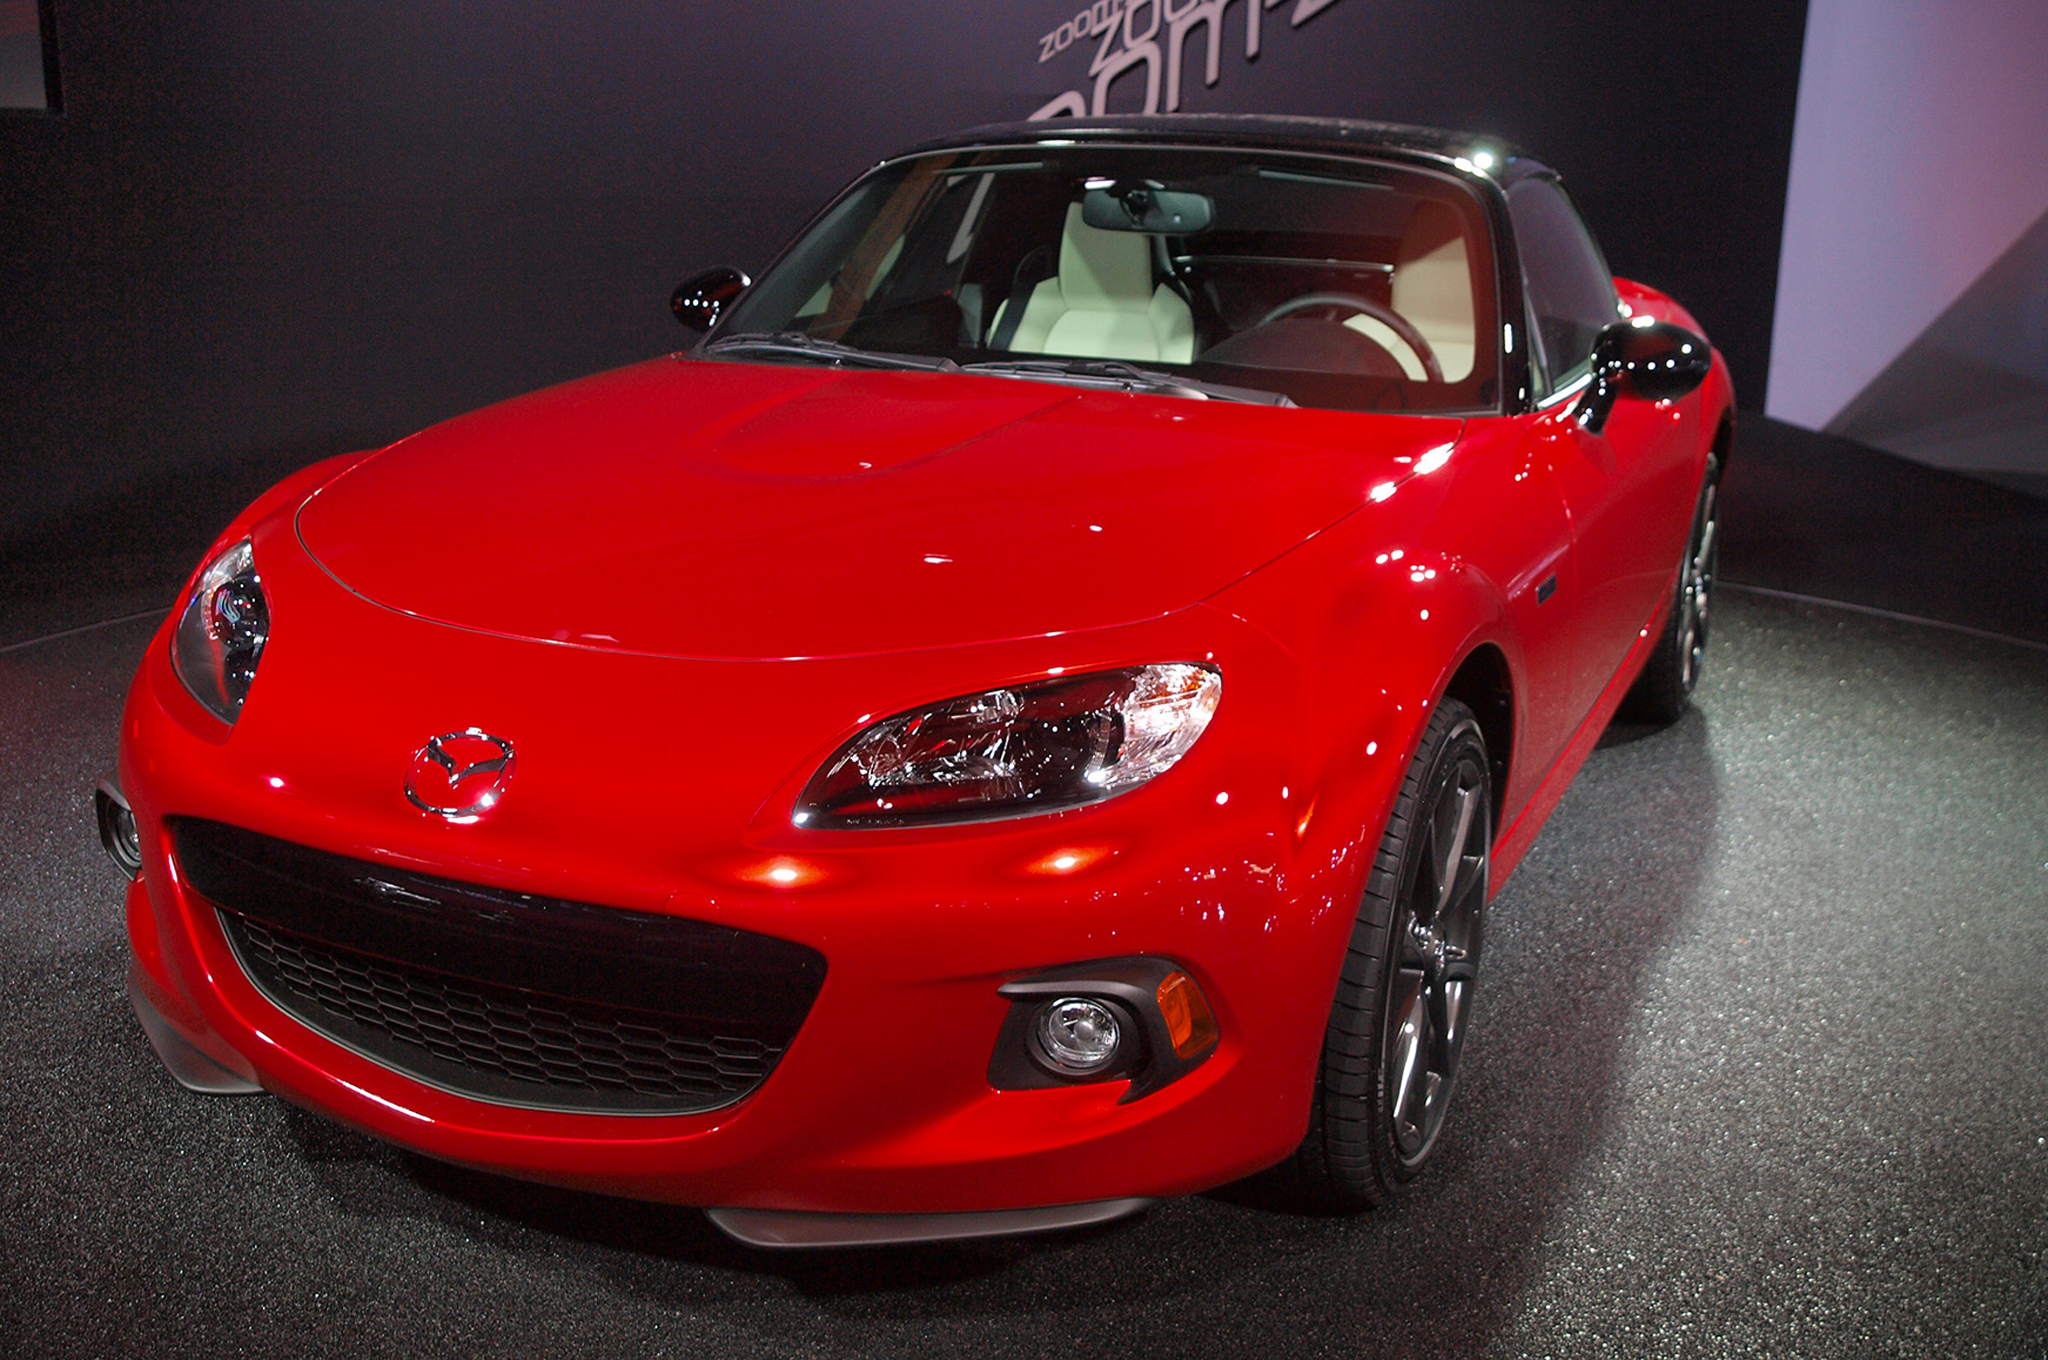 https://enthusiastnetwork.s3.amazonaws.com/uploads/sites/5/2014/05/2015-Mazda-Miata-25-year-Anniversary-Edition-front-end.jpg?impolicy=entryimage